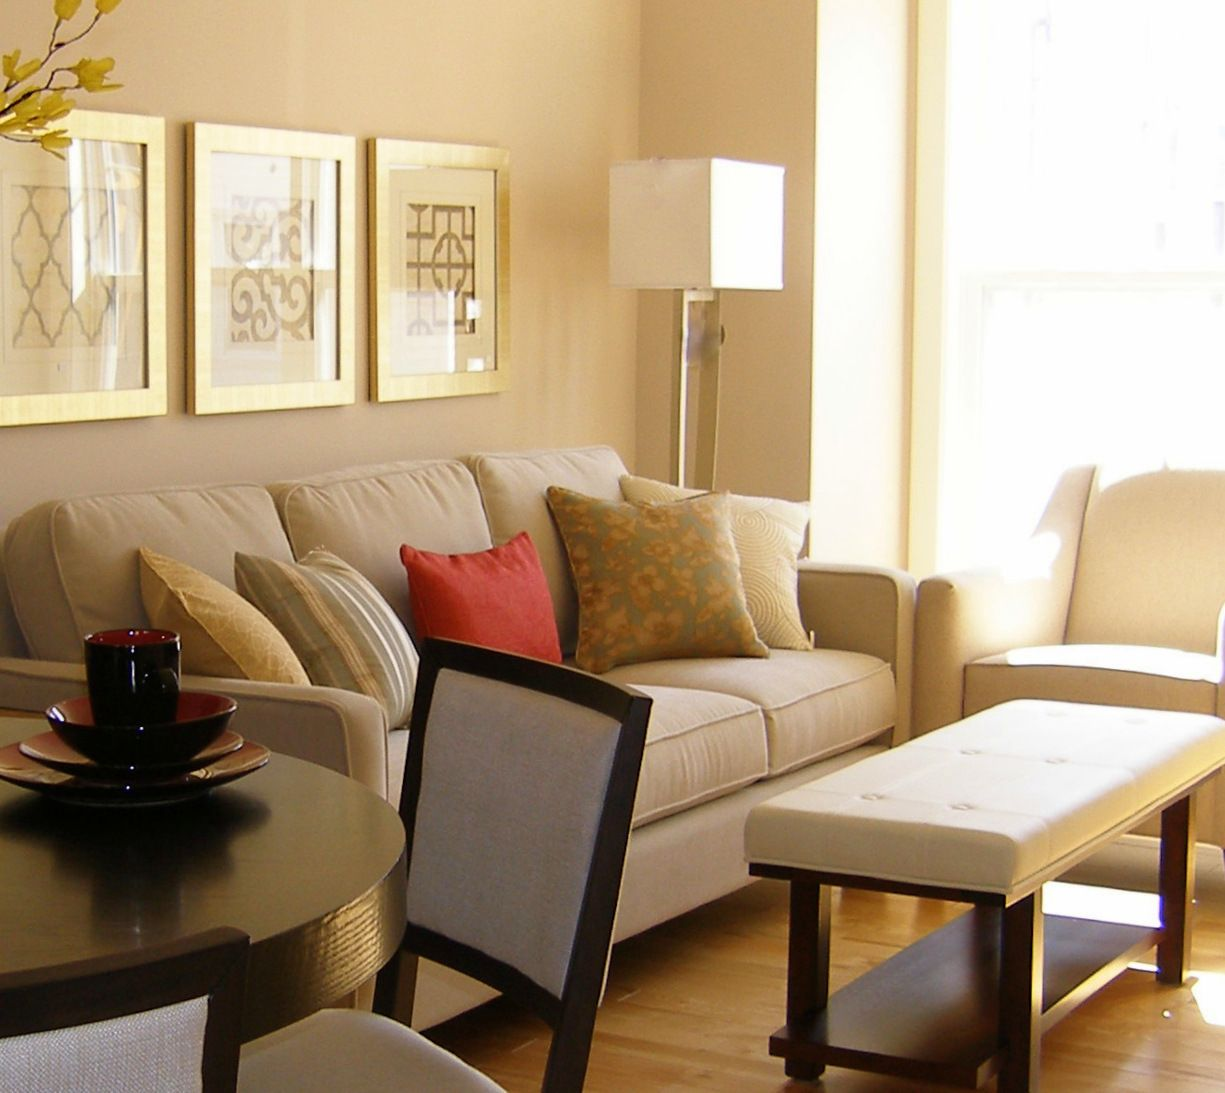 Condo Living Room Decorating Ideas: Decorating Small Condo Spaces